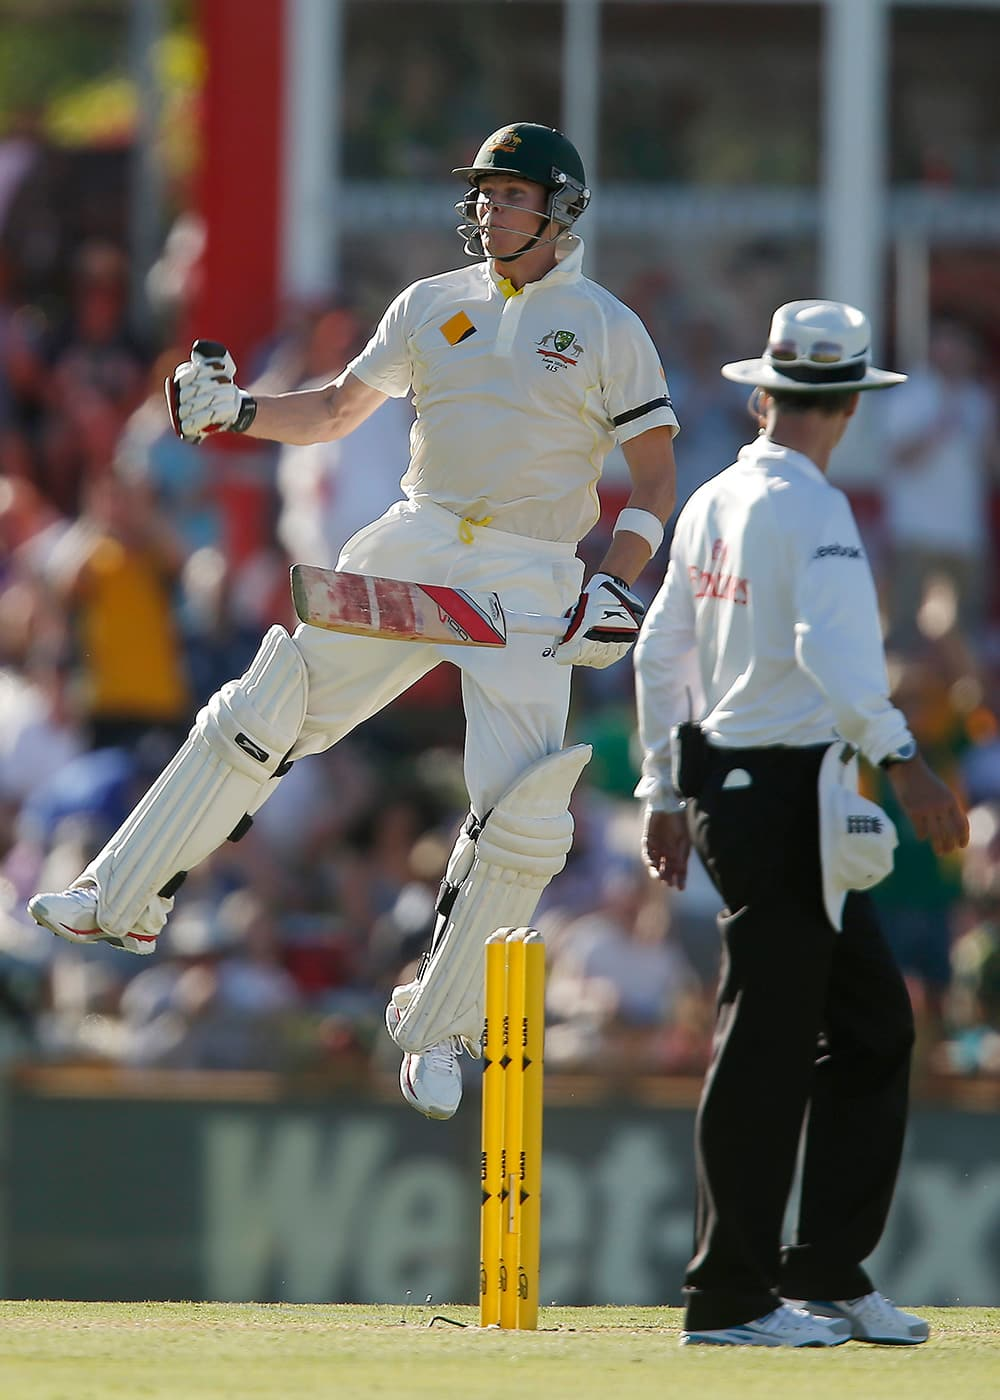 Australia`s Steve Smith jumps in the air to celebrate scoring 100 runs against England on the first day of their Ashes cricket test match in Perth, Australia.